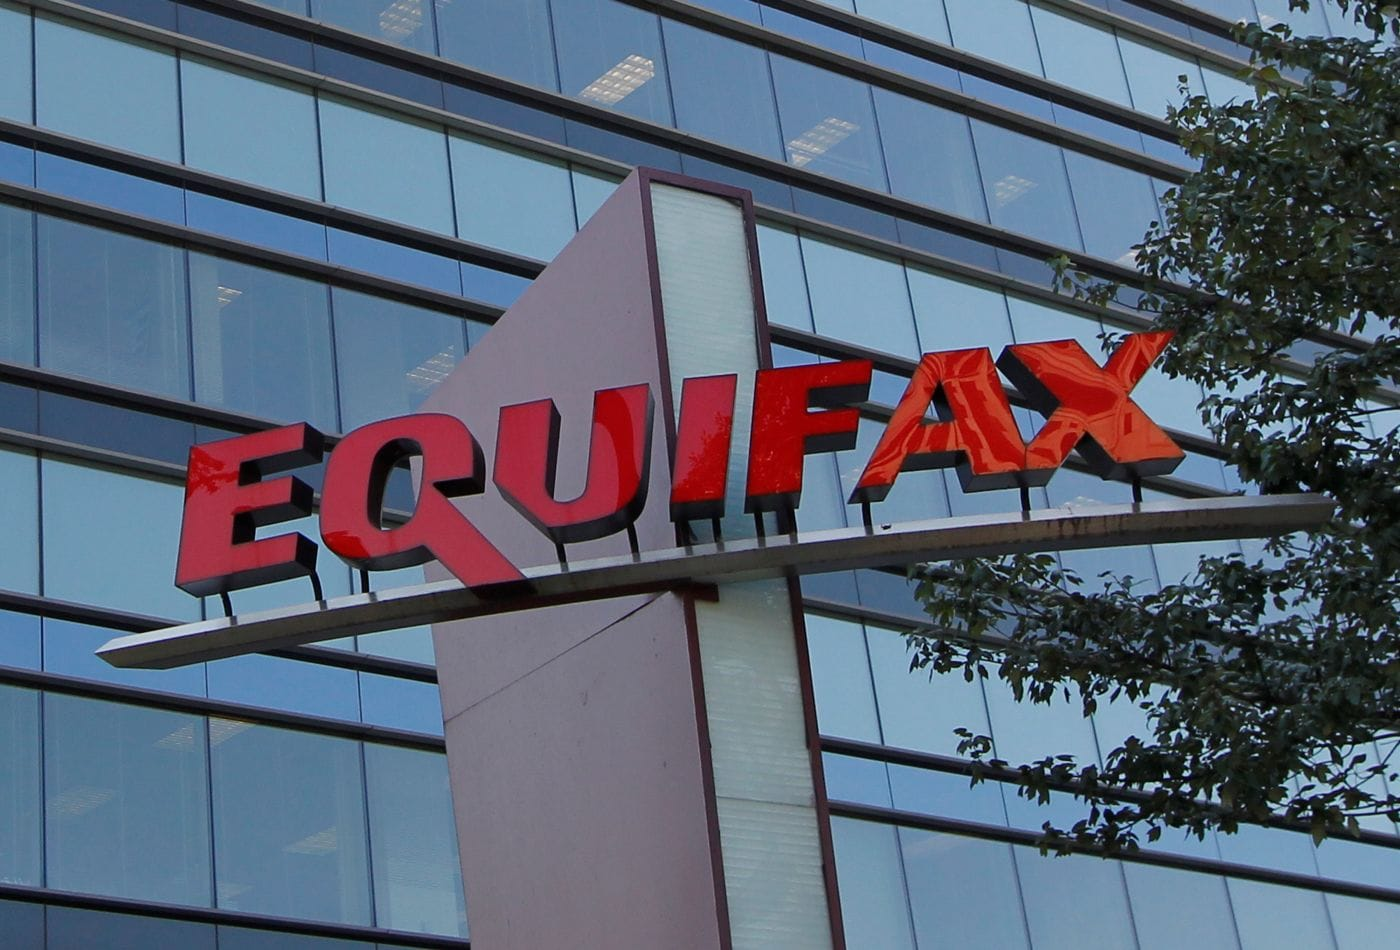 equifax data breach what happened. a view of Equifax building